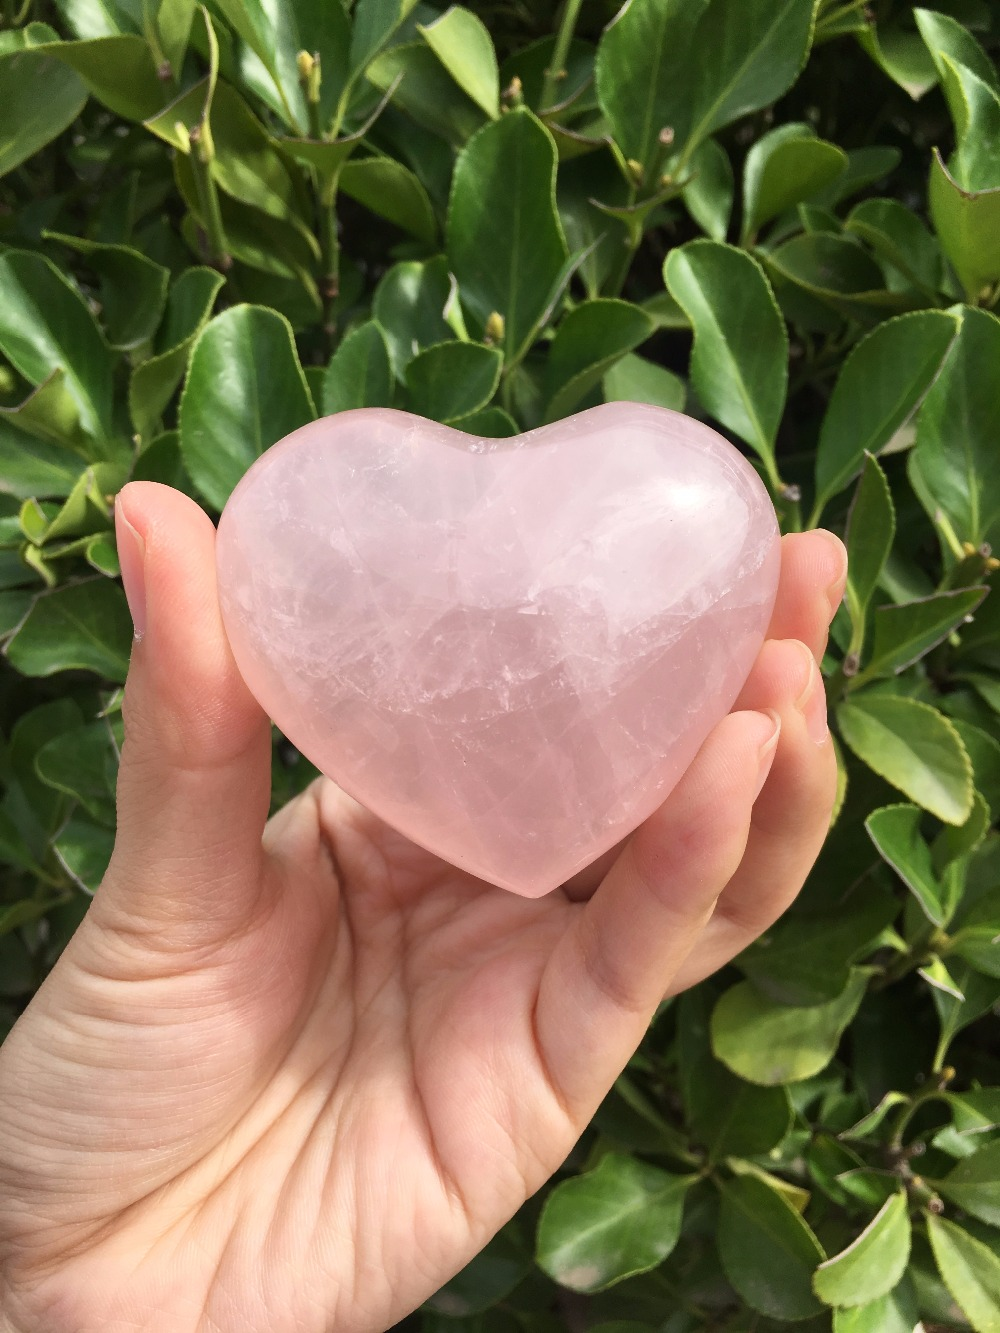 natural rose quartz crystal heart for home decoration healing crystals wedding decoration christmas decornatural rose quartz crystal heart for home decoration healing crystals wedding decoration christmas decor